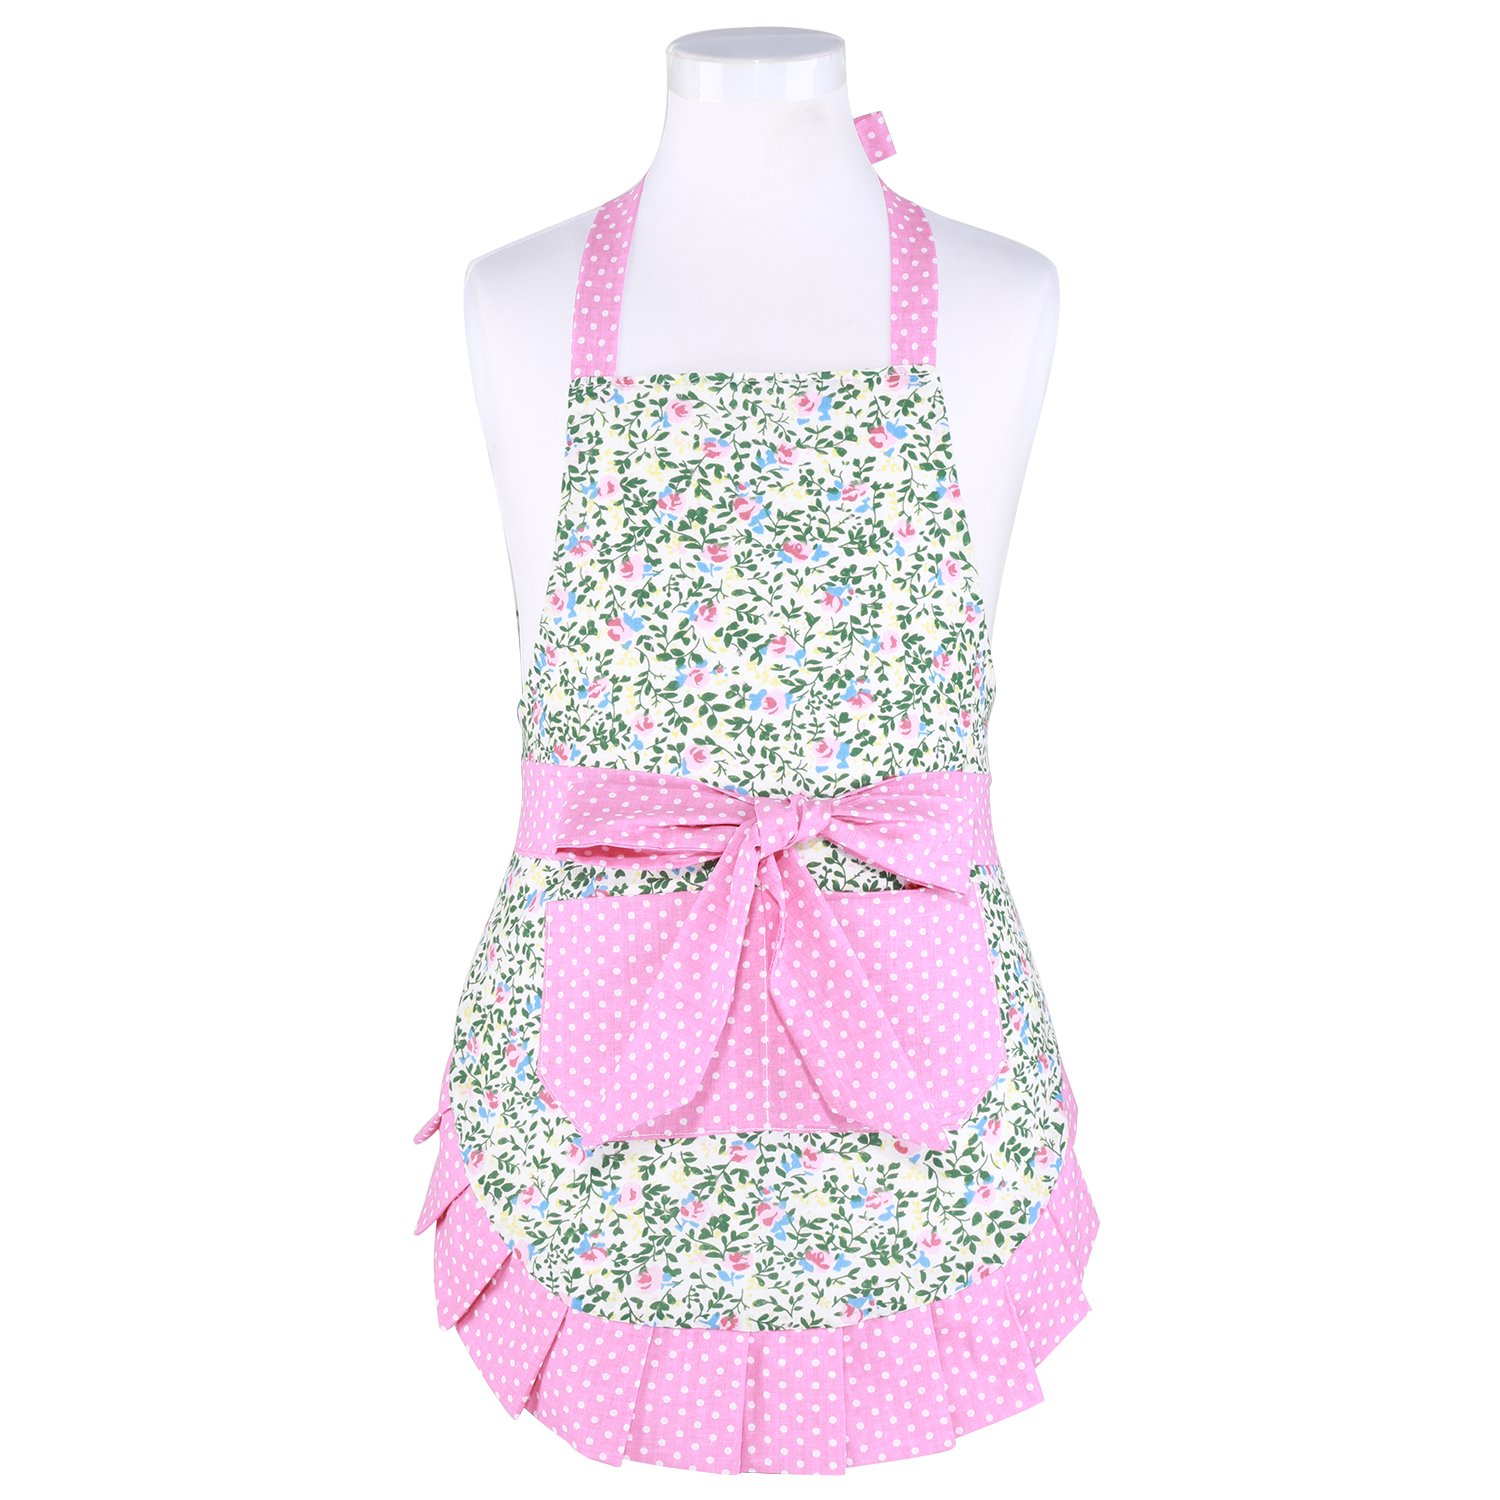 Neoviva Child Aprons with Big Pocket for Play Kitchen, Style Kathy, Alice's Secret Garden